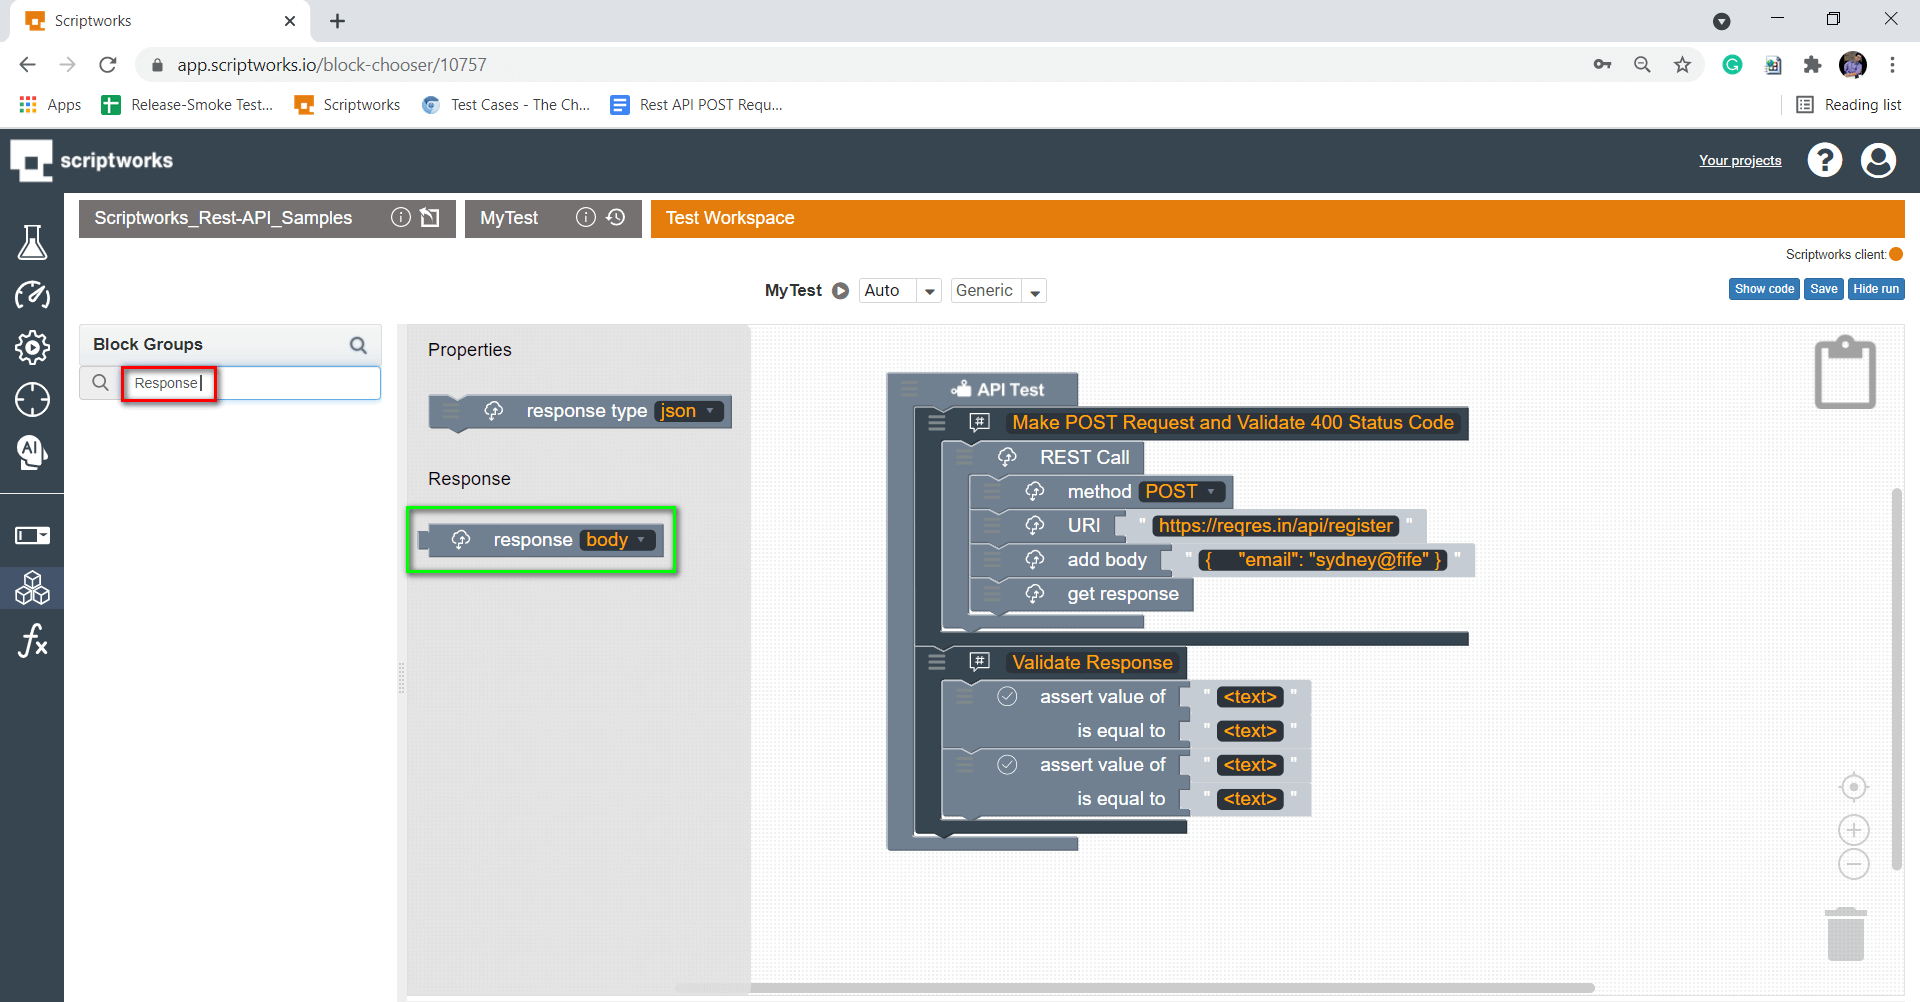 Search Response from left hand side panel